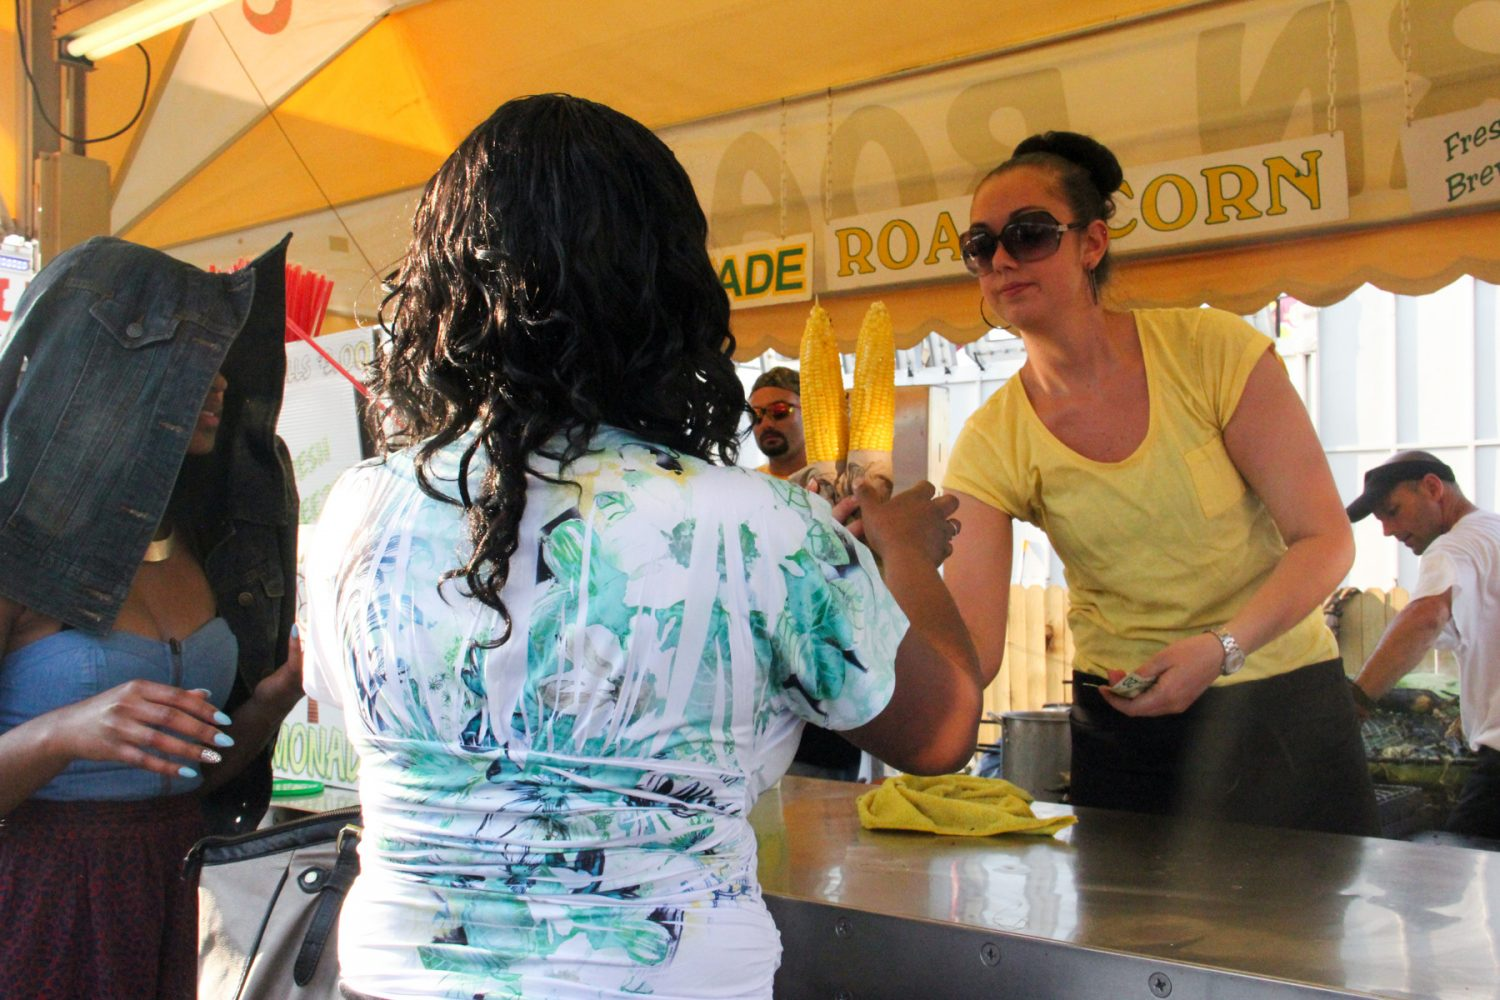 A vendor hands a customer two ears of buttered corn at the Florida Strawberry Festival on Sunday afternoon, Mar. 9, 2014. Also sold at the festival were turkey legs, gyros, fried butter and fresh squeezed lemonade.